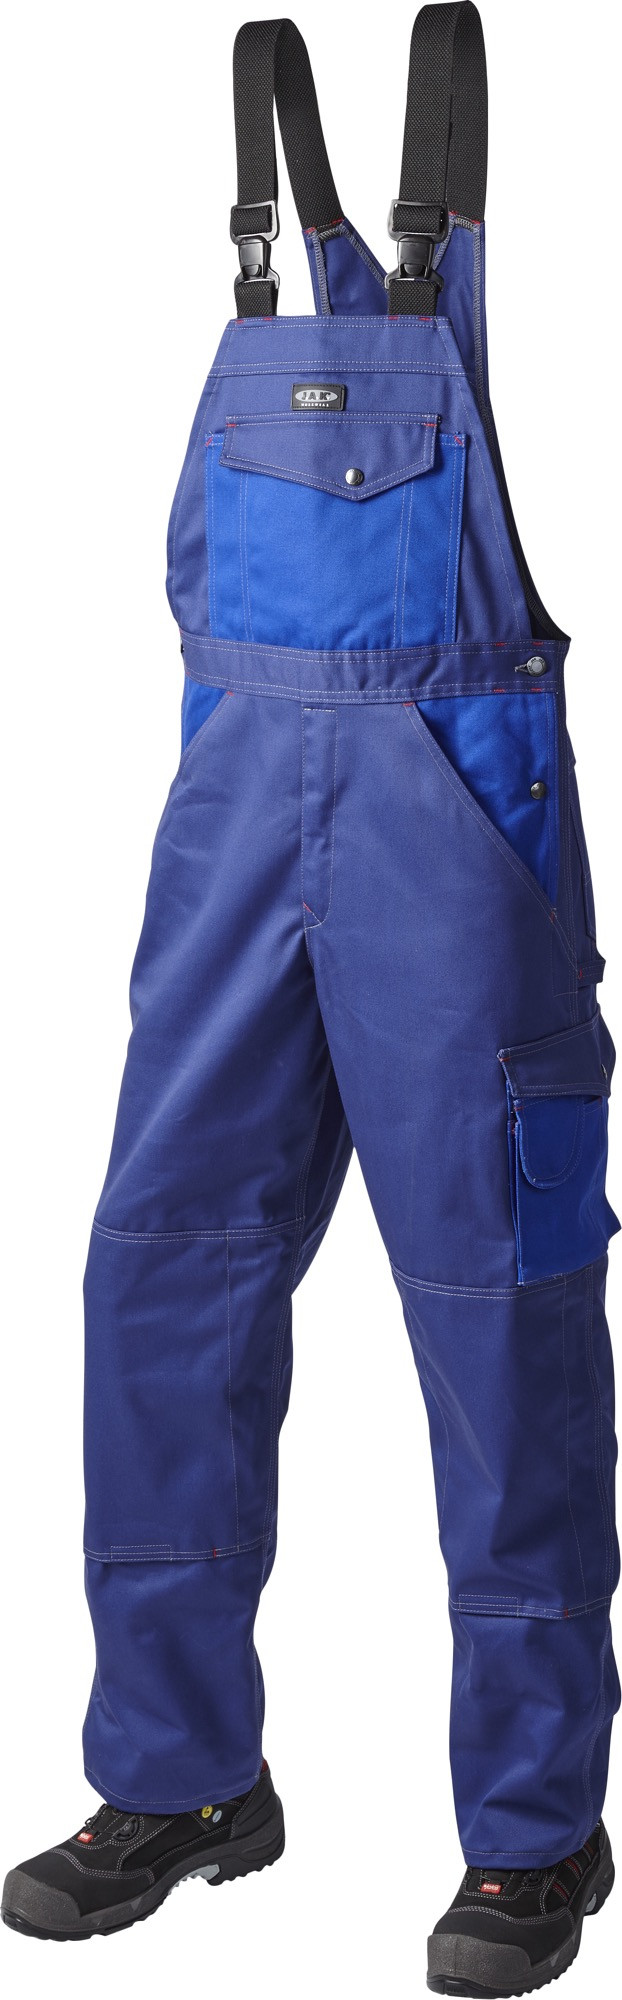 OUTLET - Overall, SUPER COLOUR BOMULD, 10207 - Marine/Kongeblå